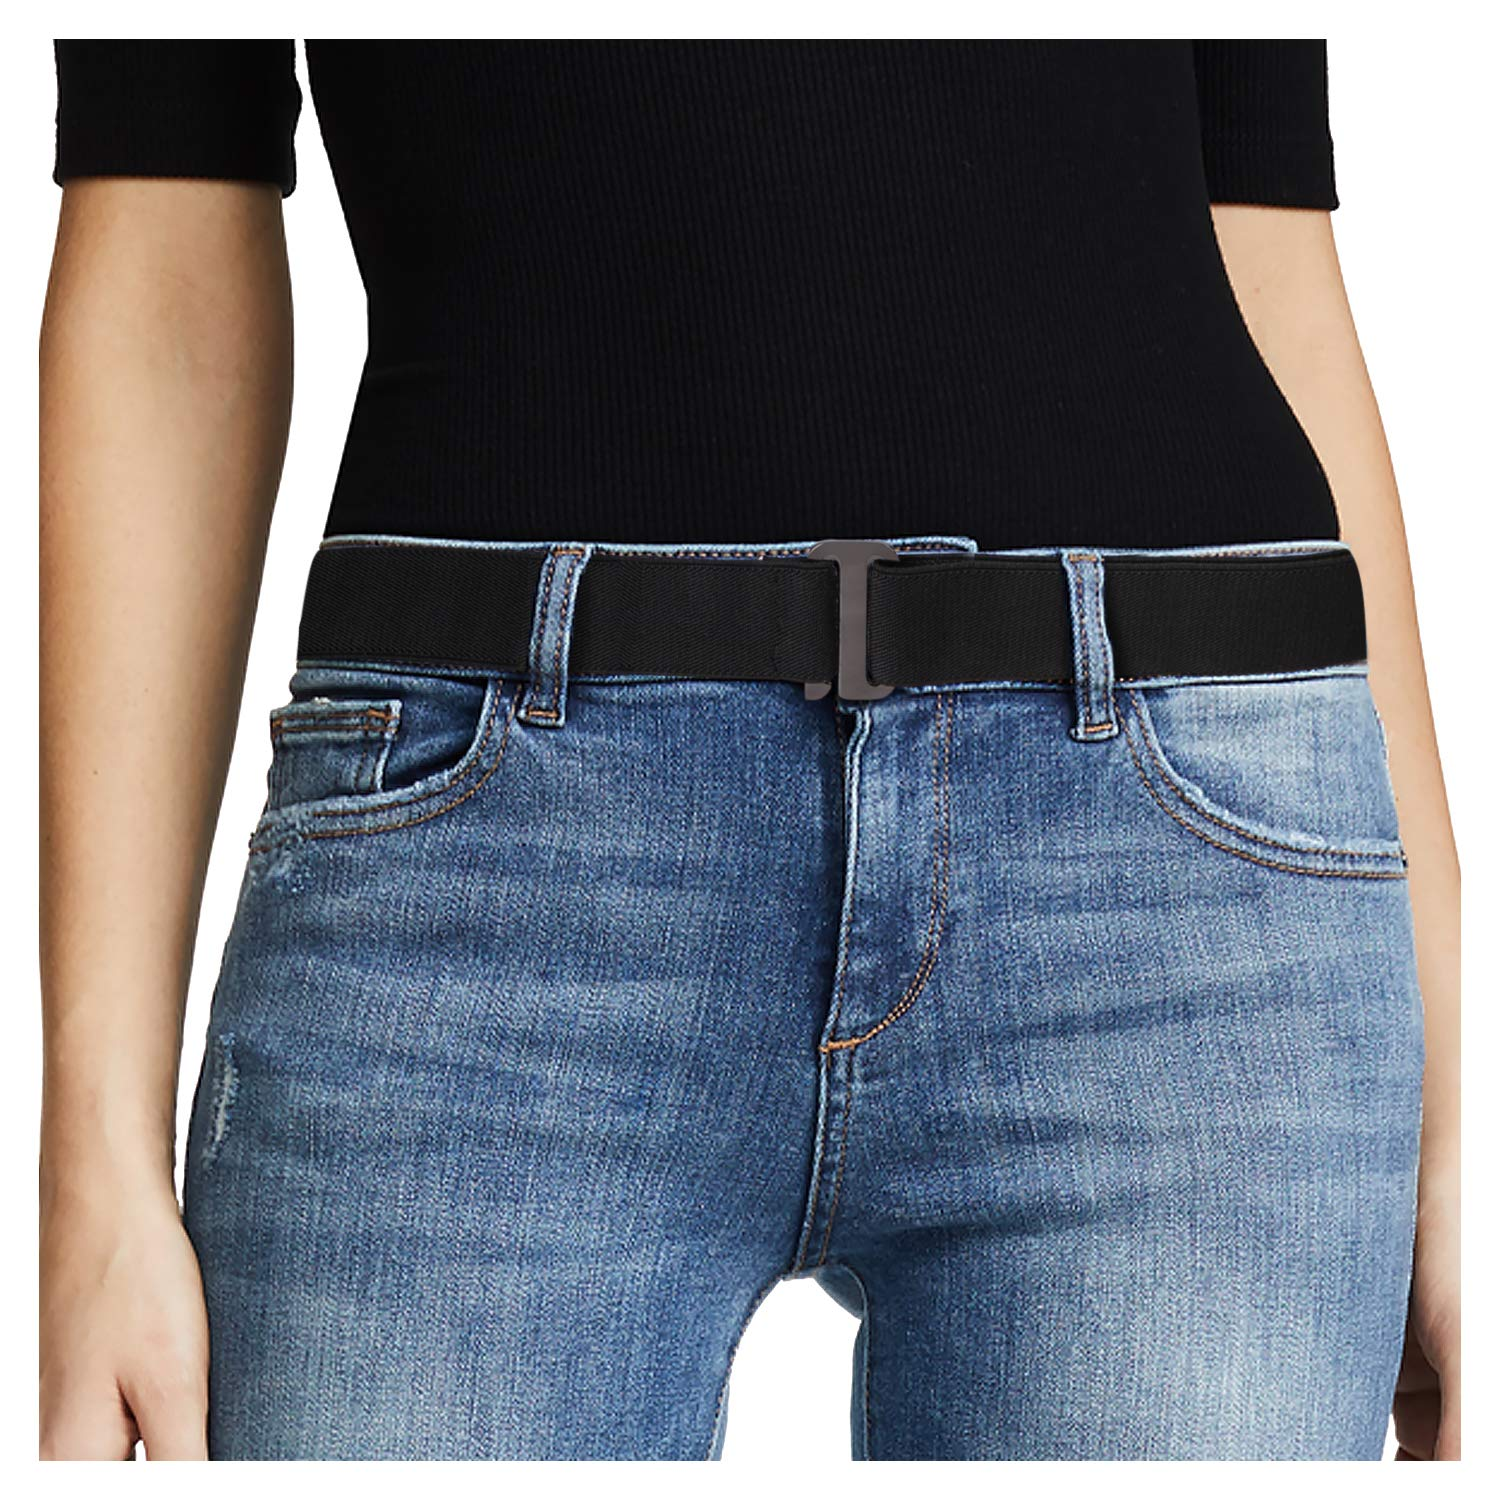 No Show Women Stretch Belt Invisible Elastic Web Strap Belt with Flat Buckle for Jeans Pants Dresses.